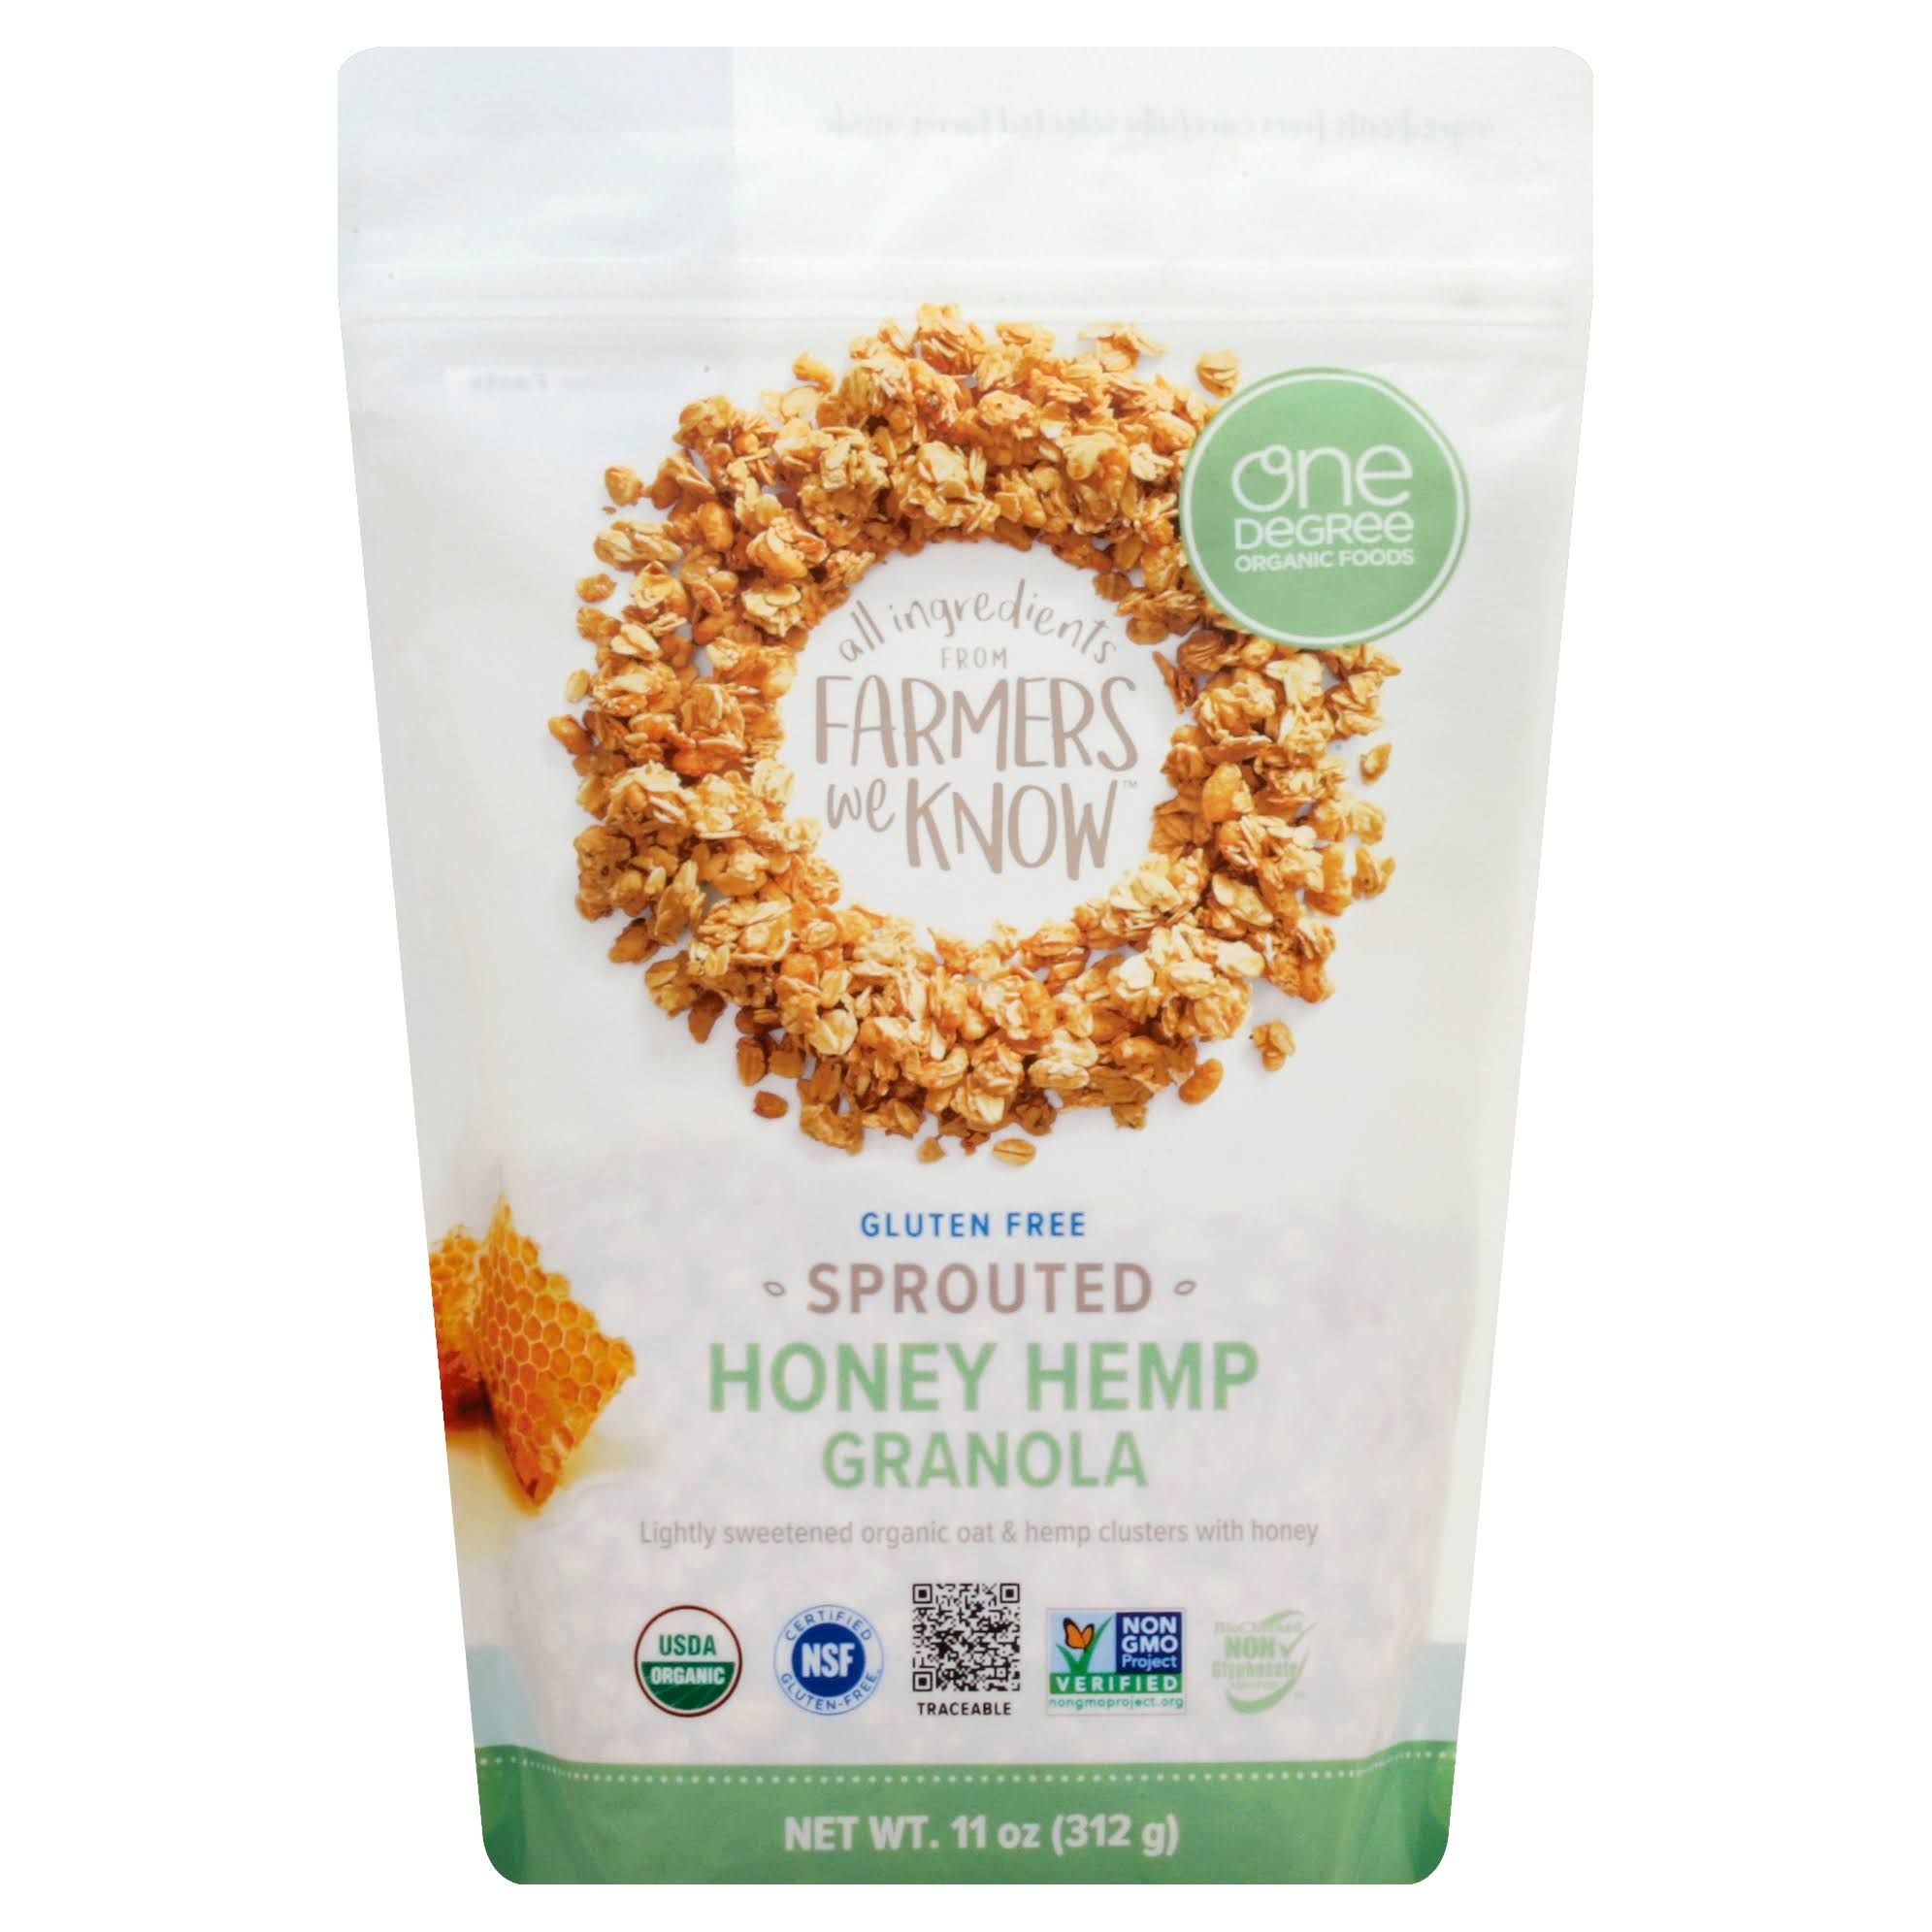 One Degree Organic Foods Sprouted Oat Hemp Granola - Honey, 11oz